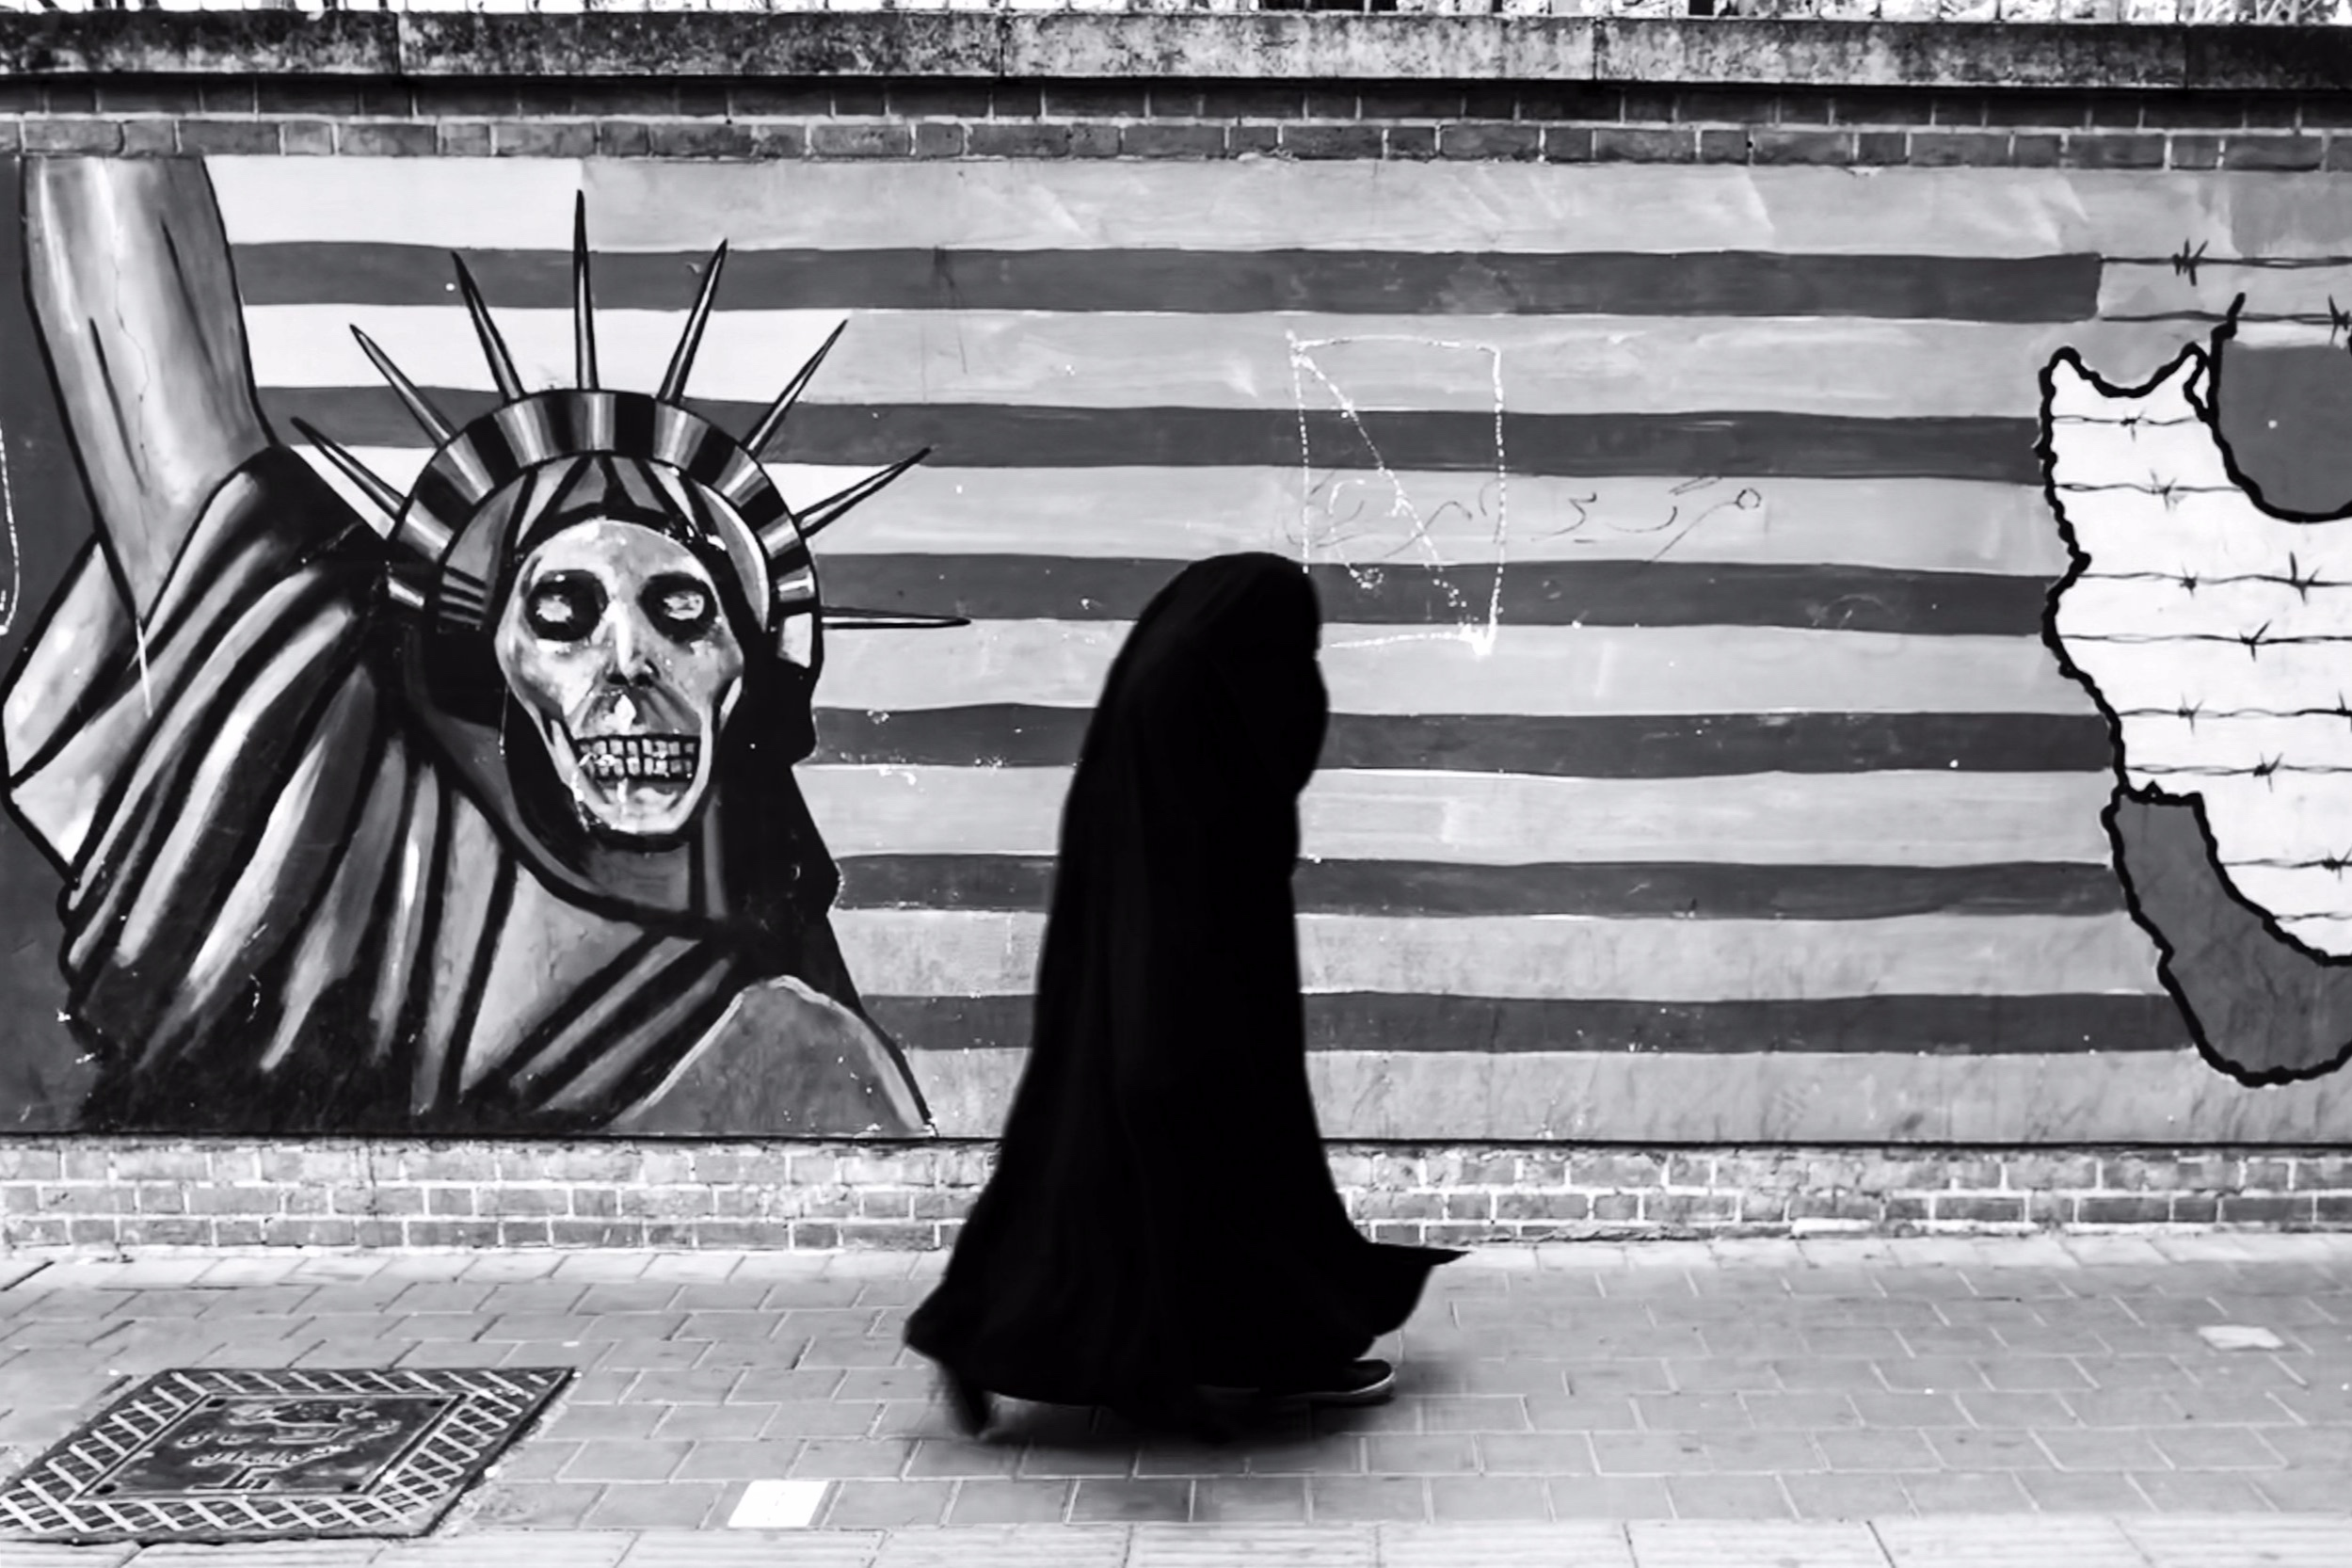 The propaganda painted on the outer wall of the former U.S. Embassy at Tehran, Iran.